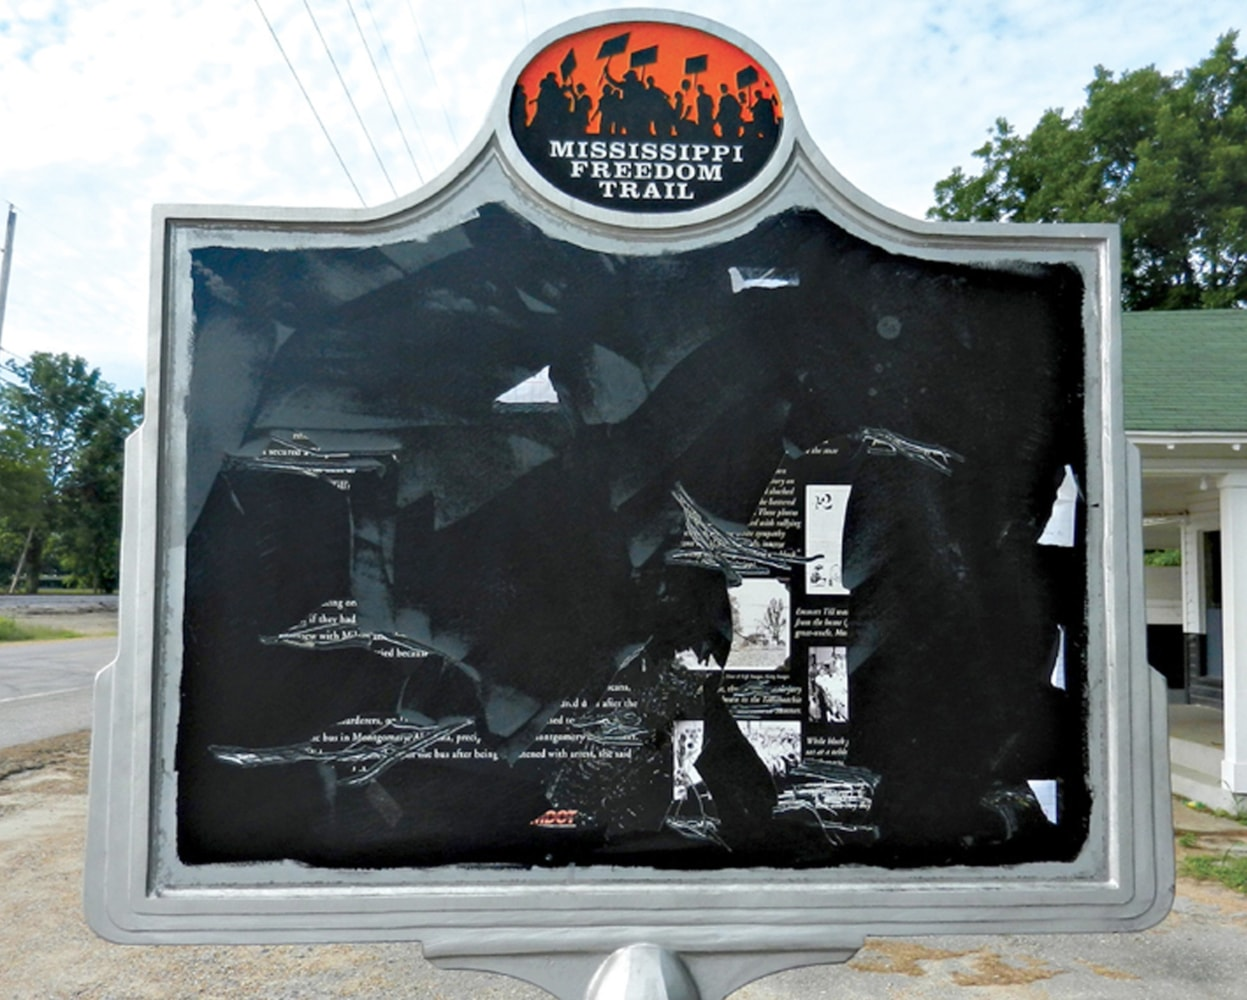 Vandals scrape Emmett Till's biography from historical MS  marker